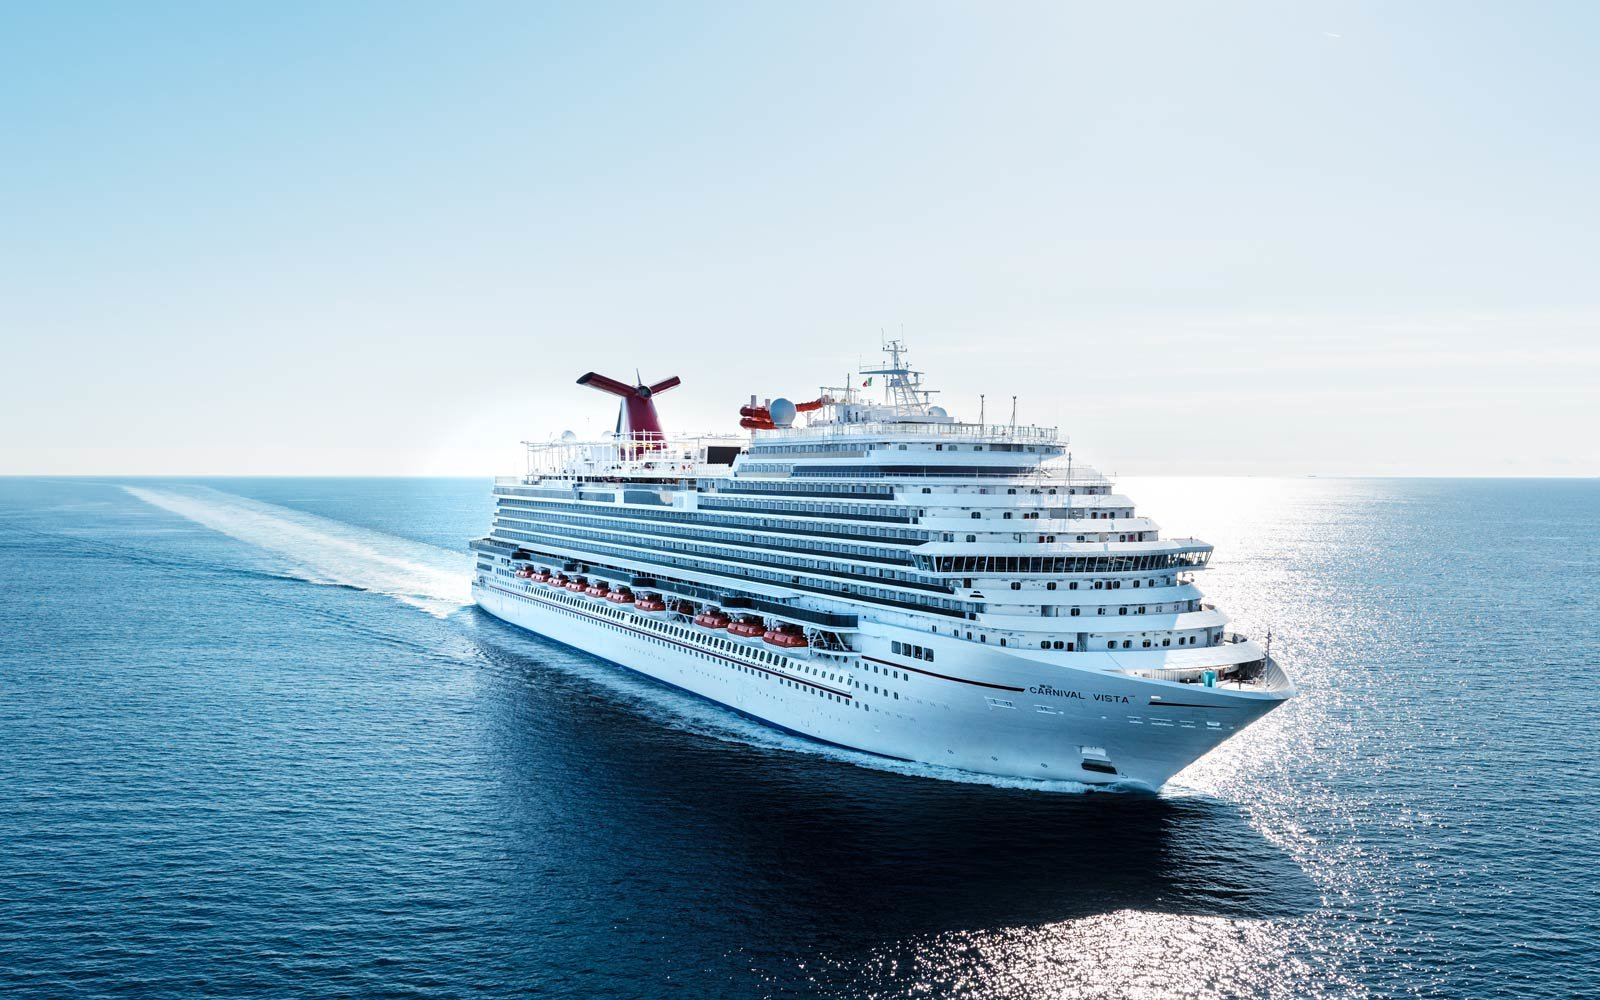 Five things to know about carnival cruise line 39 s vista for Best us cruise lines